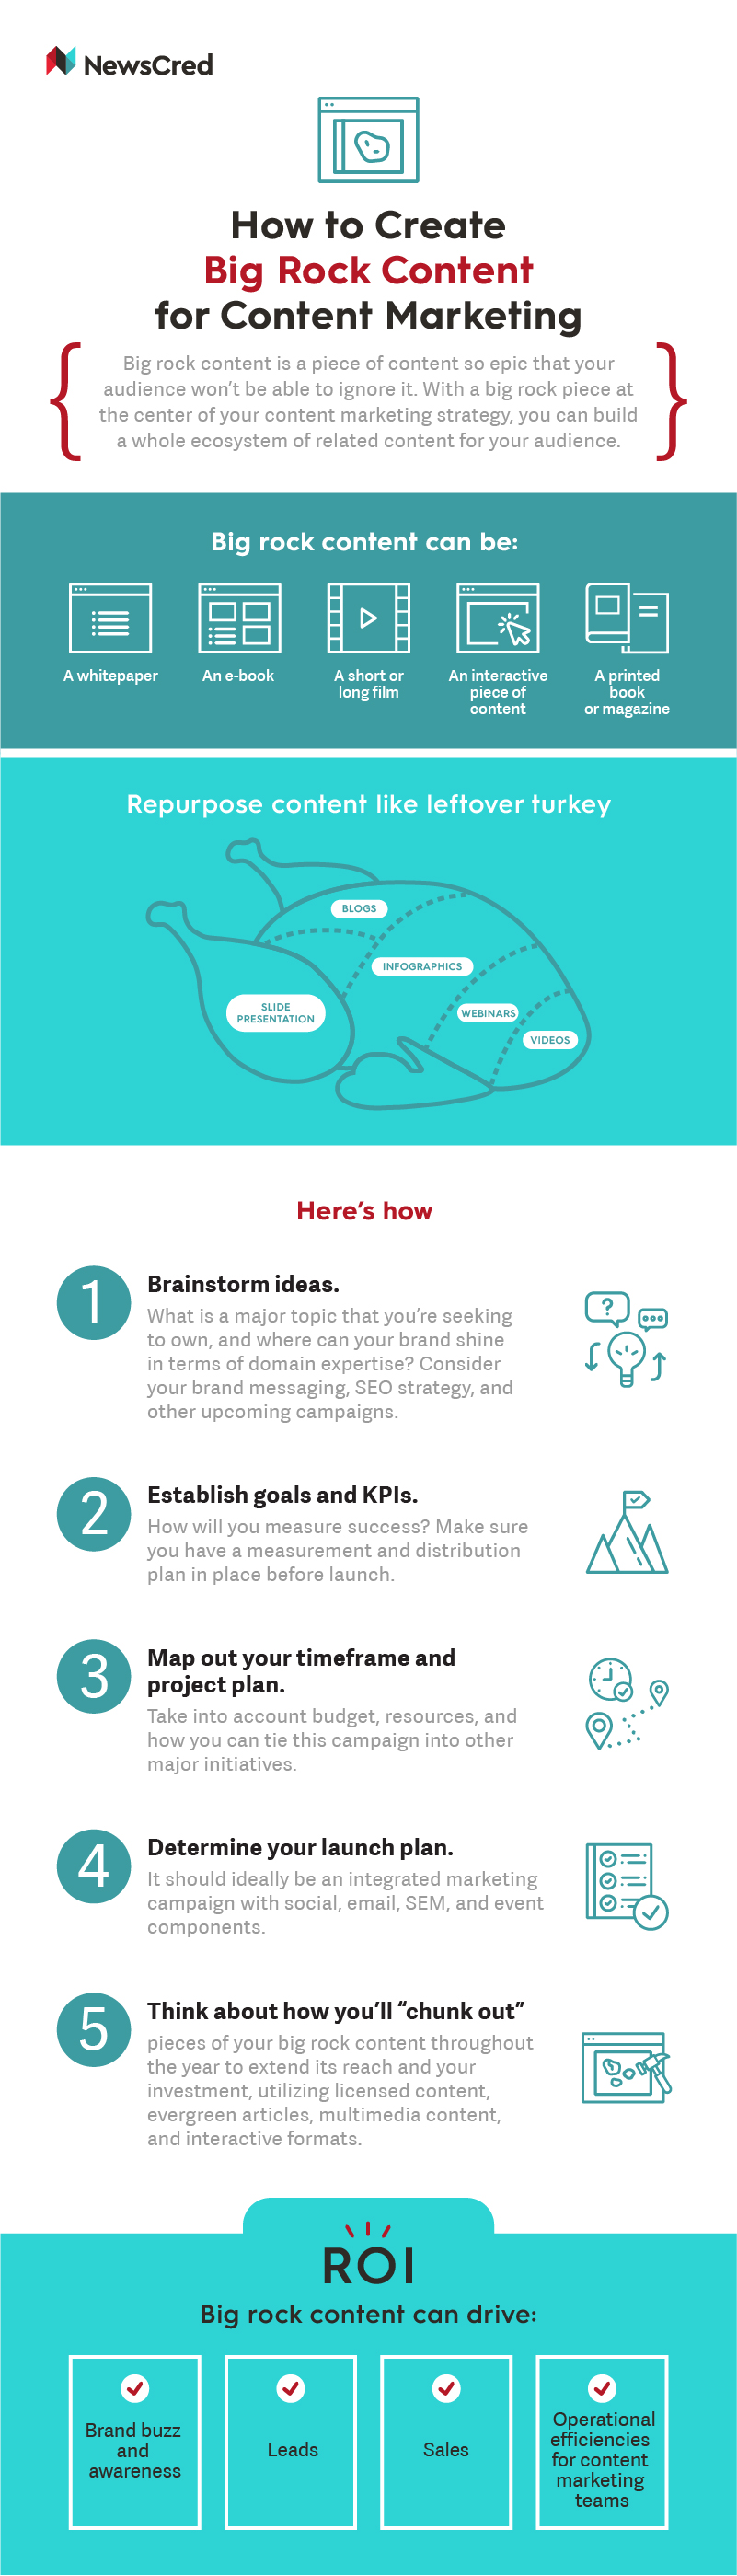 INFOGRAPHIC: How to Create Big Rock Content for Content Marketing